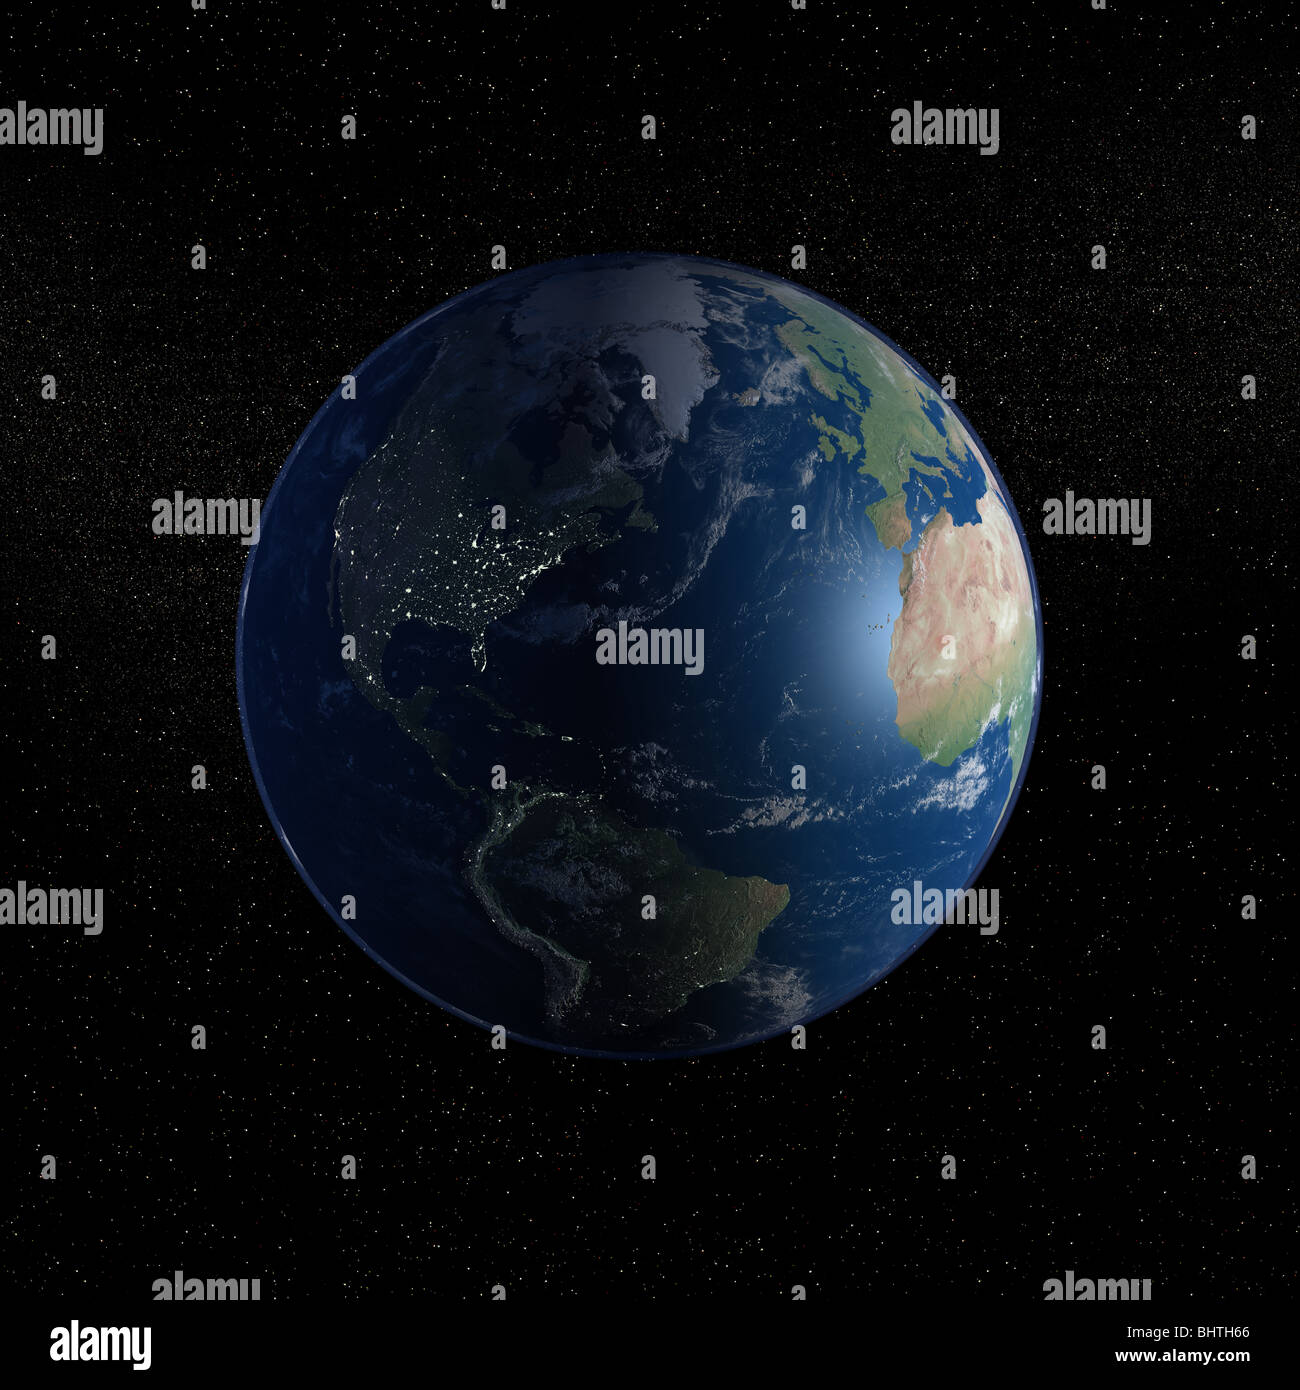 An exceptional quality photo-realistic rendered image of the Earth as seen from space on a background of stars - Stock Image